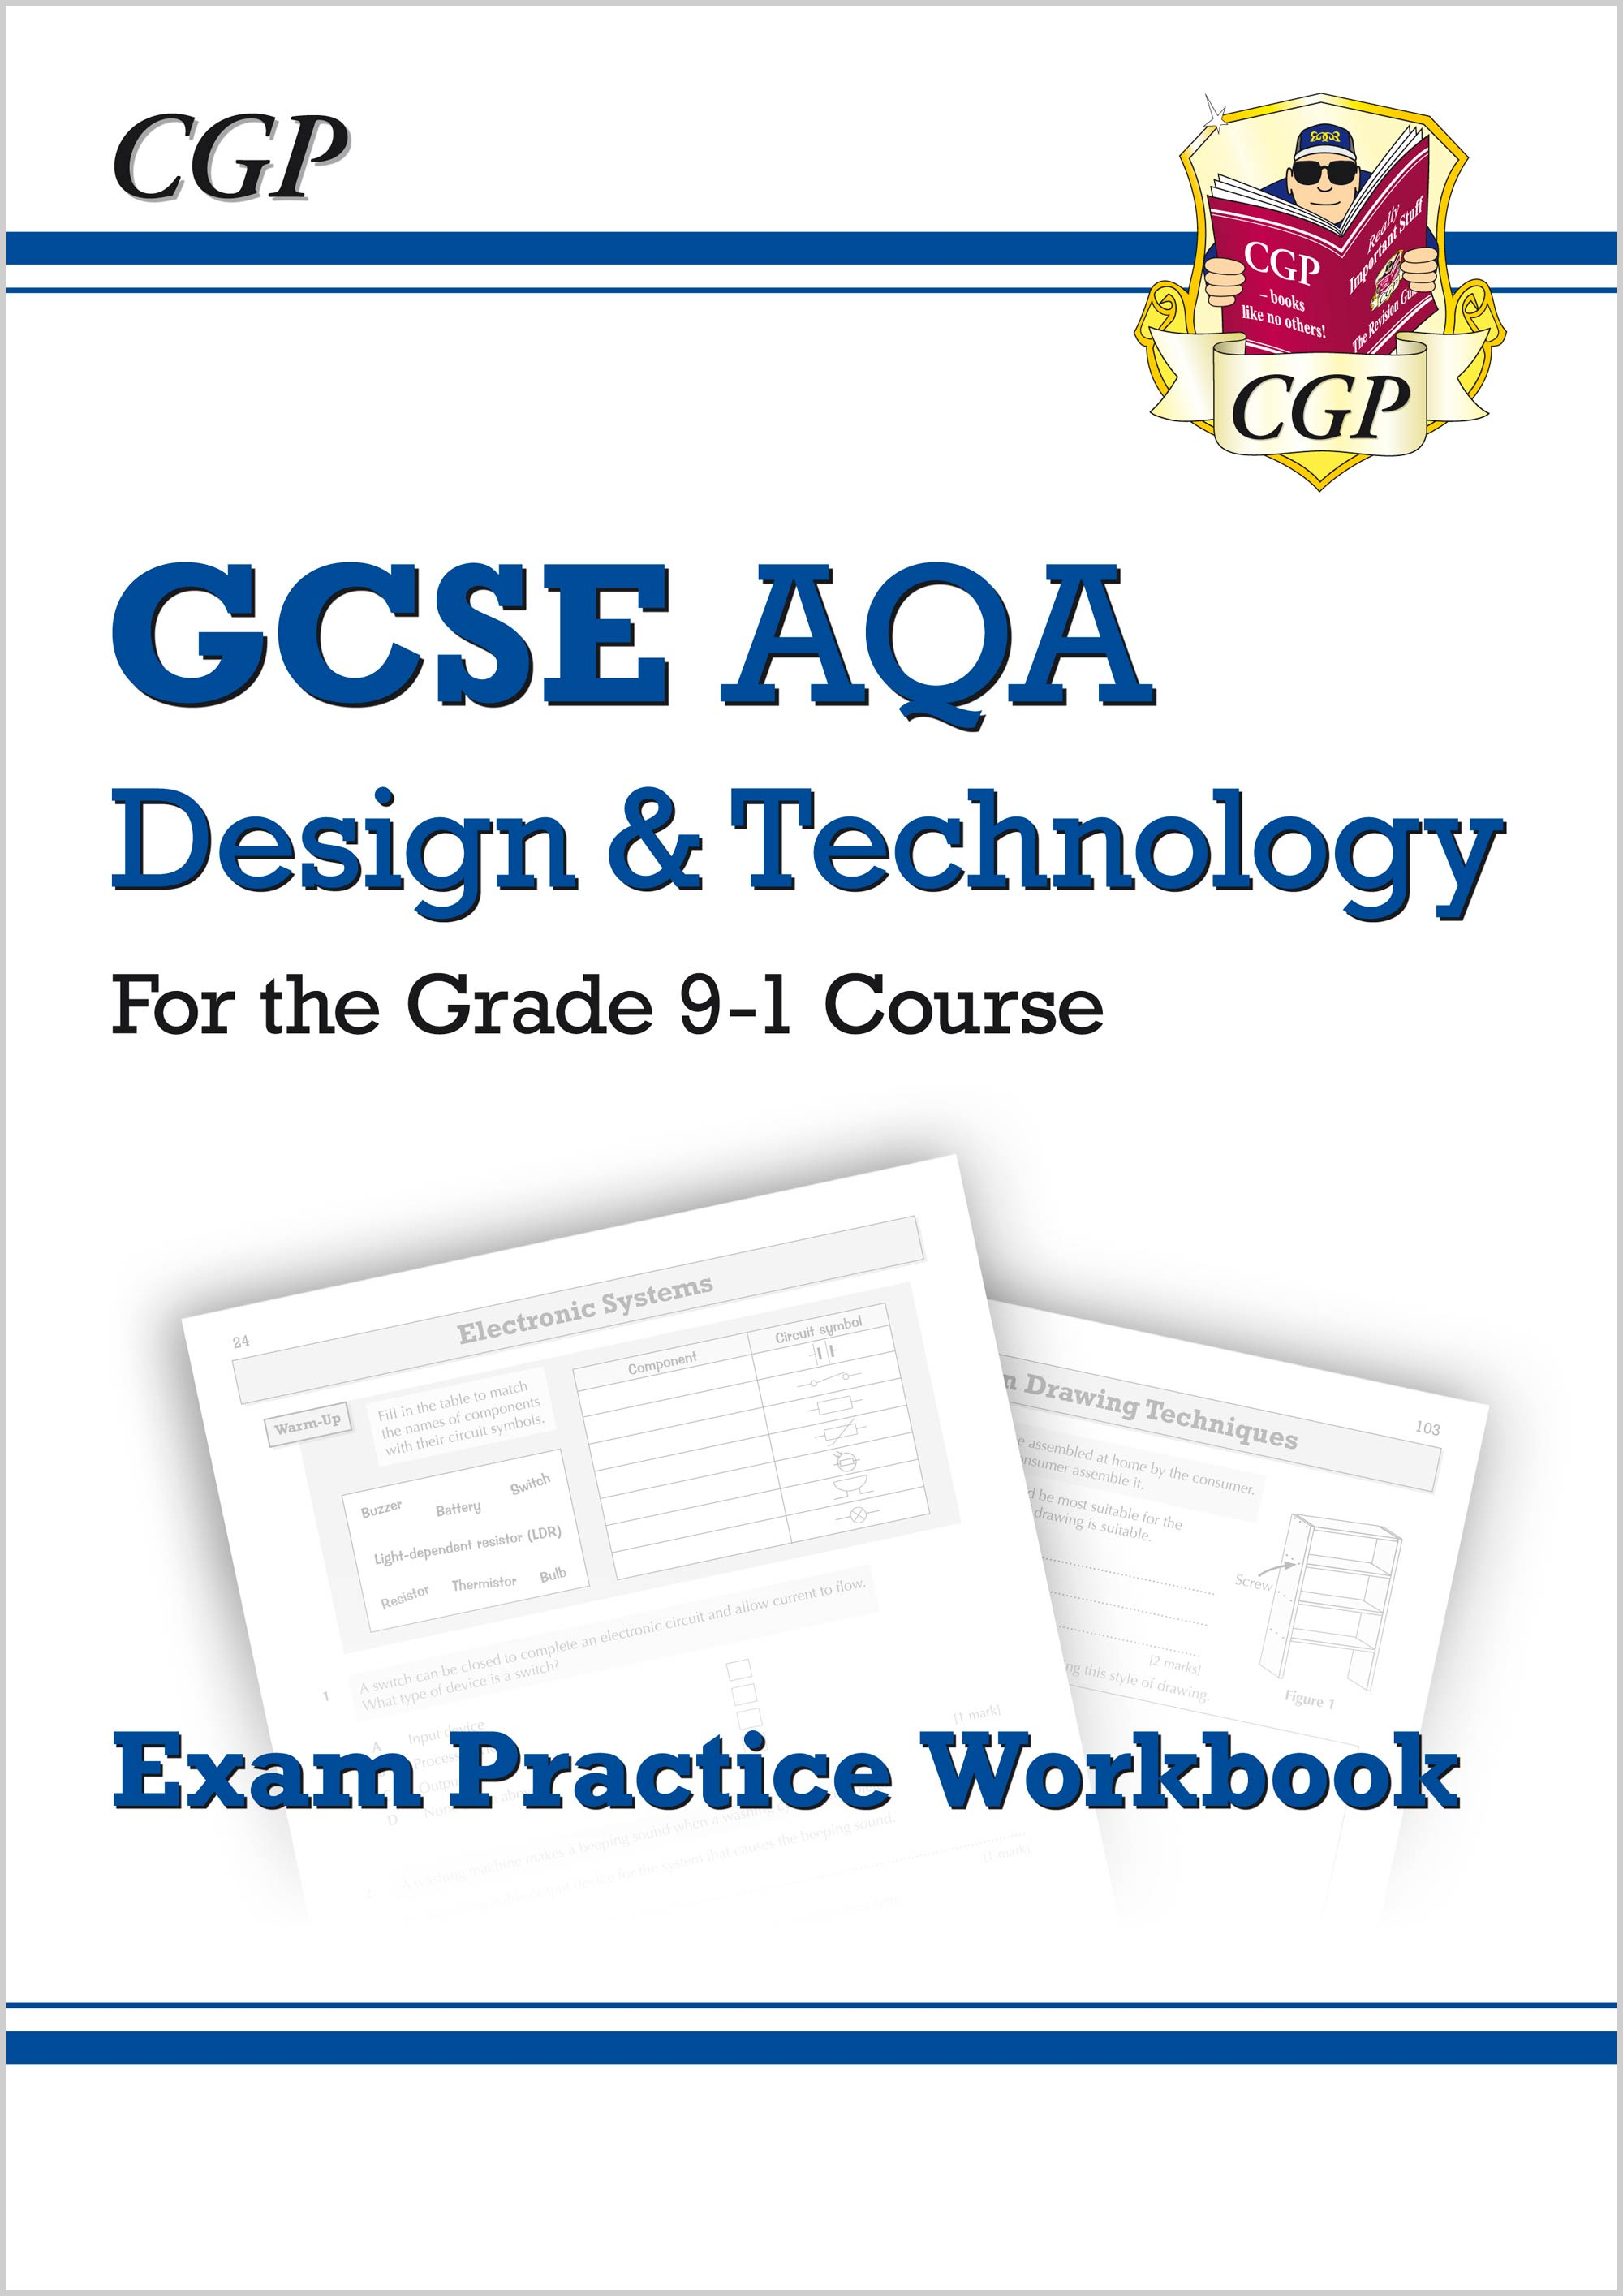 TAQ41 - Grade 9-1 GCSE Design & Technology AQA Exam Practice Workbook